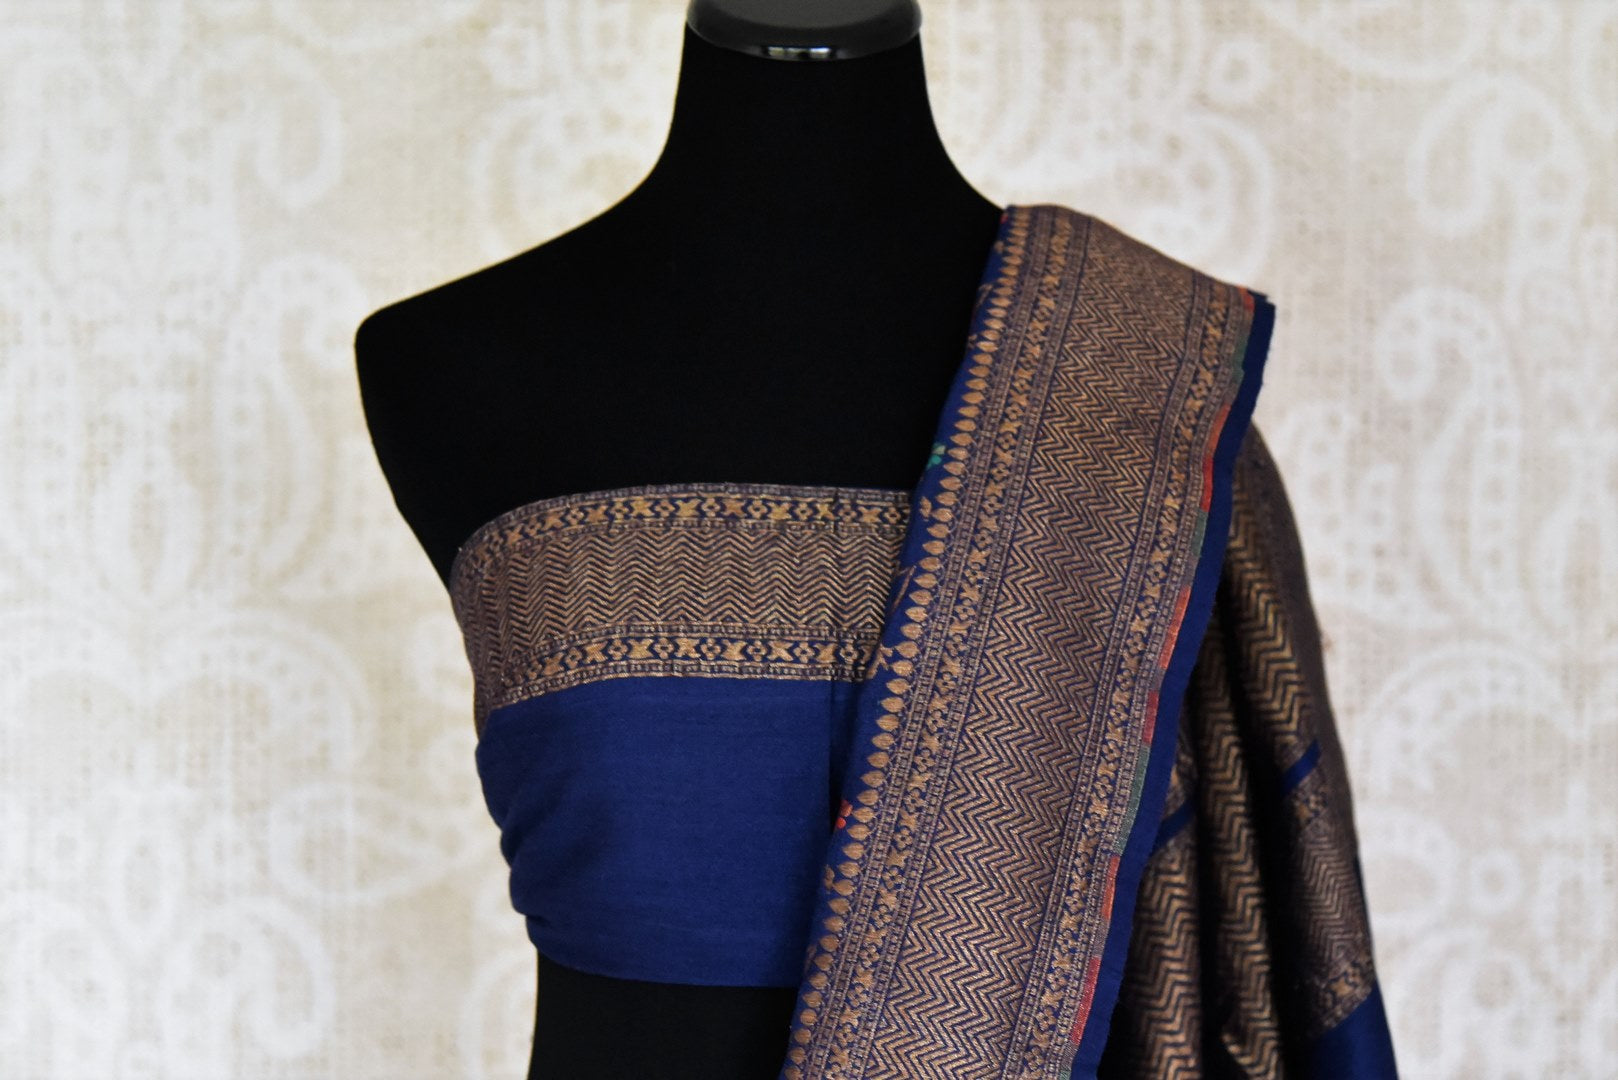 Buy dark blue muga Benarasi saree online in USA with minakari zari floral jaal. Shine bright on special occasions with traditional Indian sarees, Banarasi sarees, pure silk sarees in rich colors and designs from Pure Elegance Indian fashion store in USA.-blouse pallu